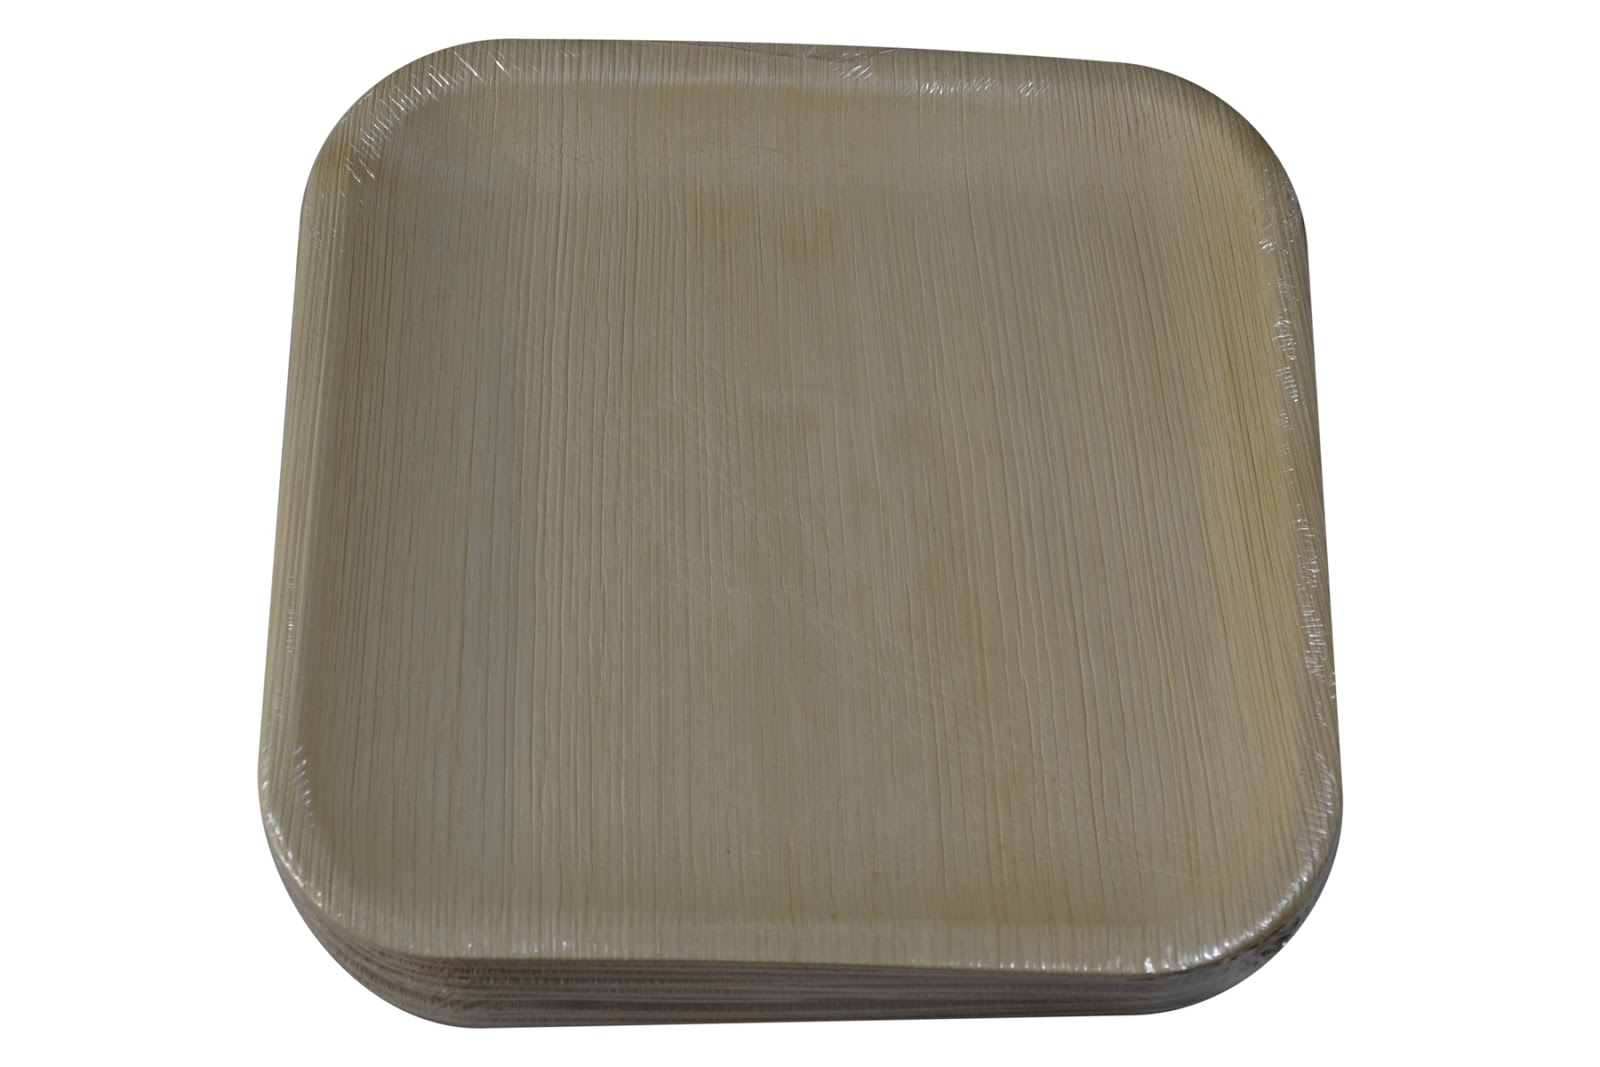 10 inch Round Plate-25pcsEco-friendly product  Sustainable disposable plates Party plate Biodegradable plates Wooden platesAreca plates ...  sc 1 st  Blogger & Leaftrend